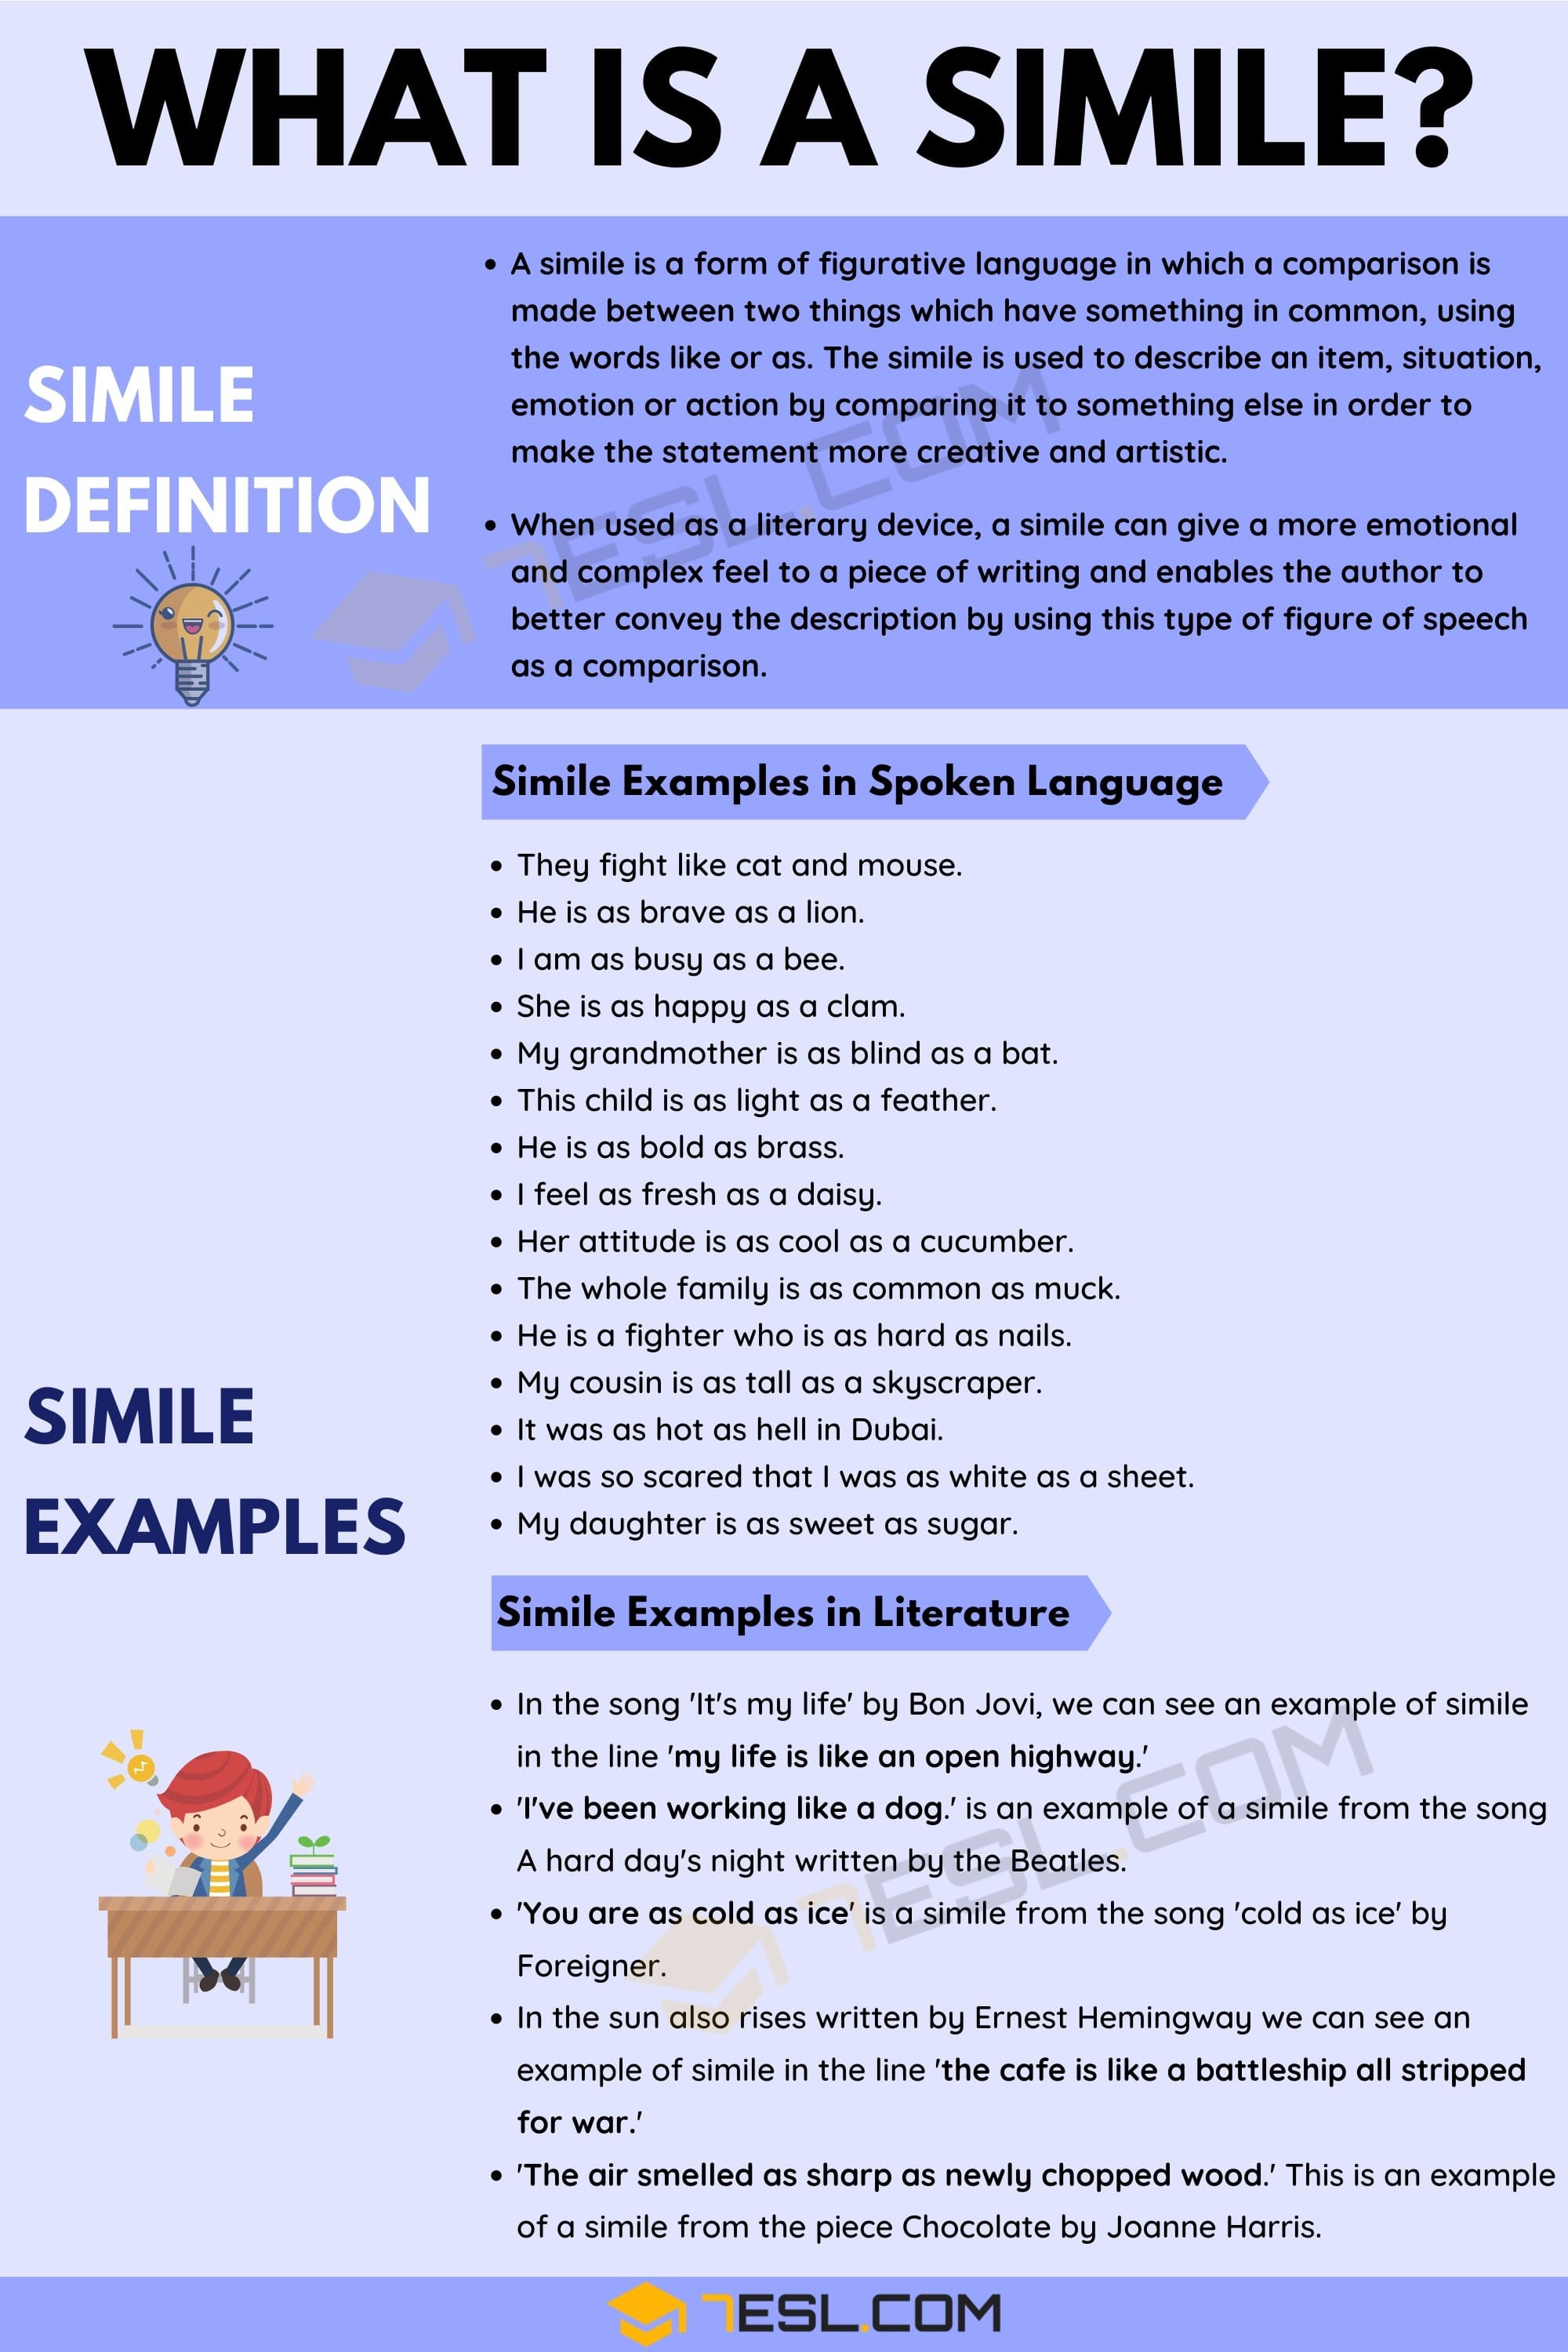 Simile Definition with Useful Examples in Spoken Language and Literature